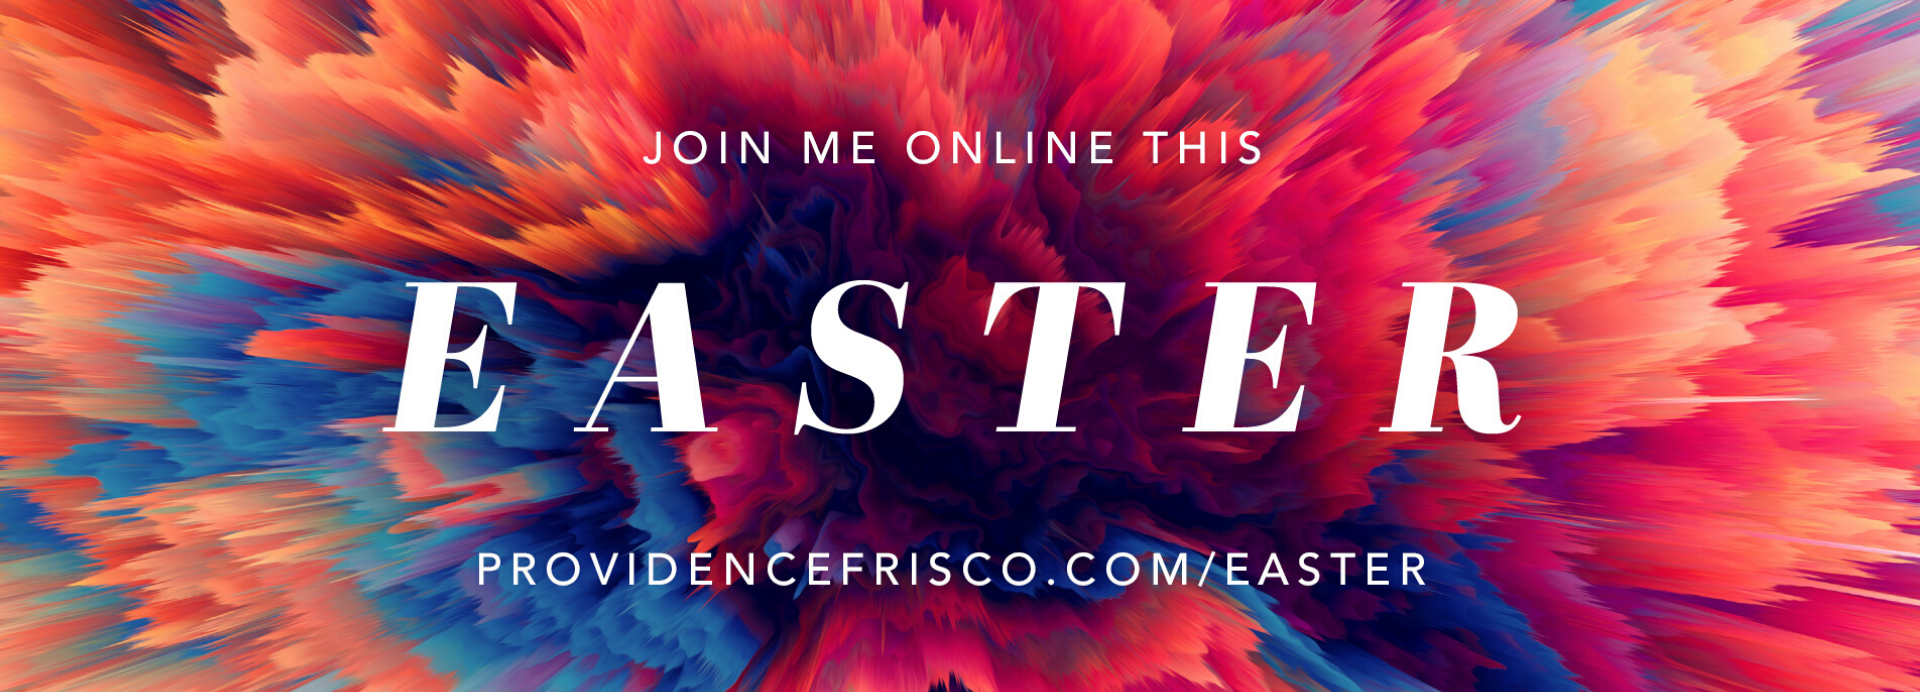 Join Me Online This Easter